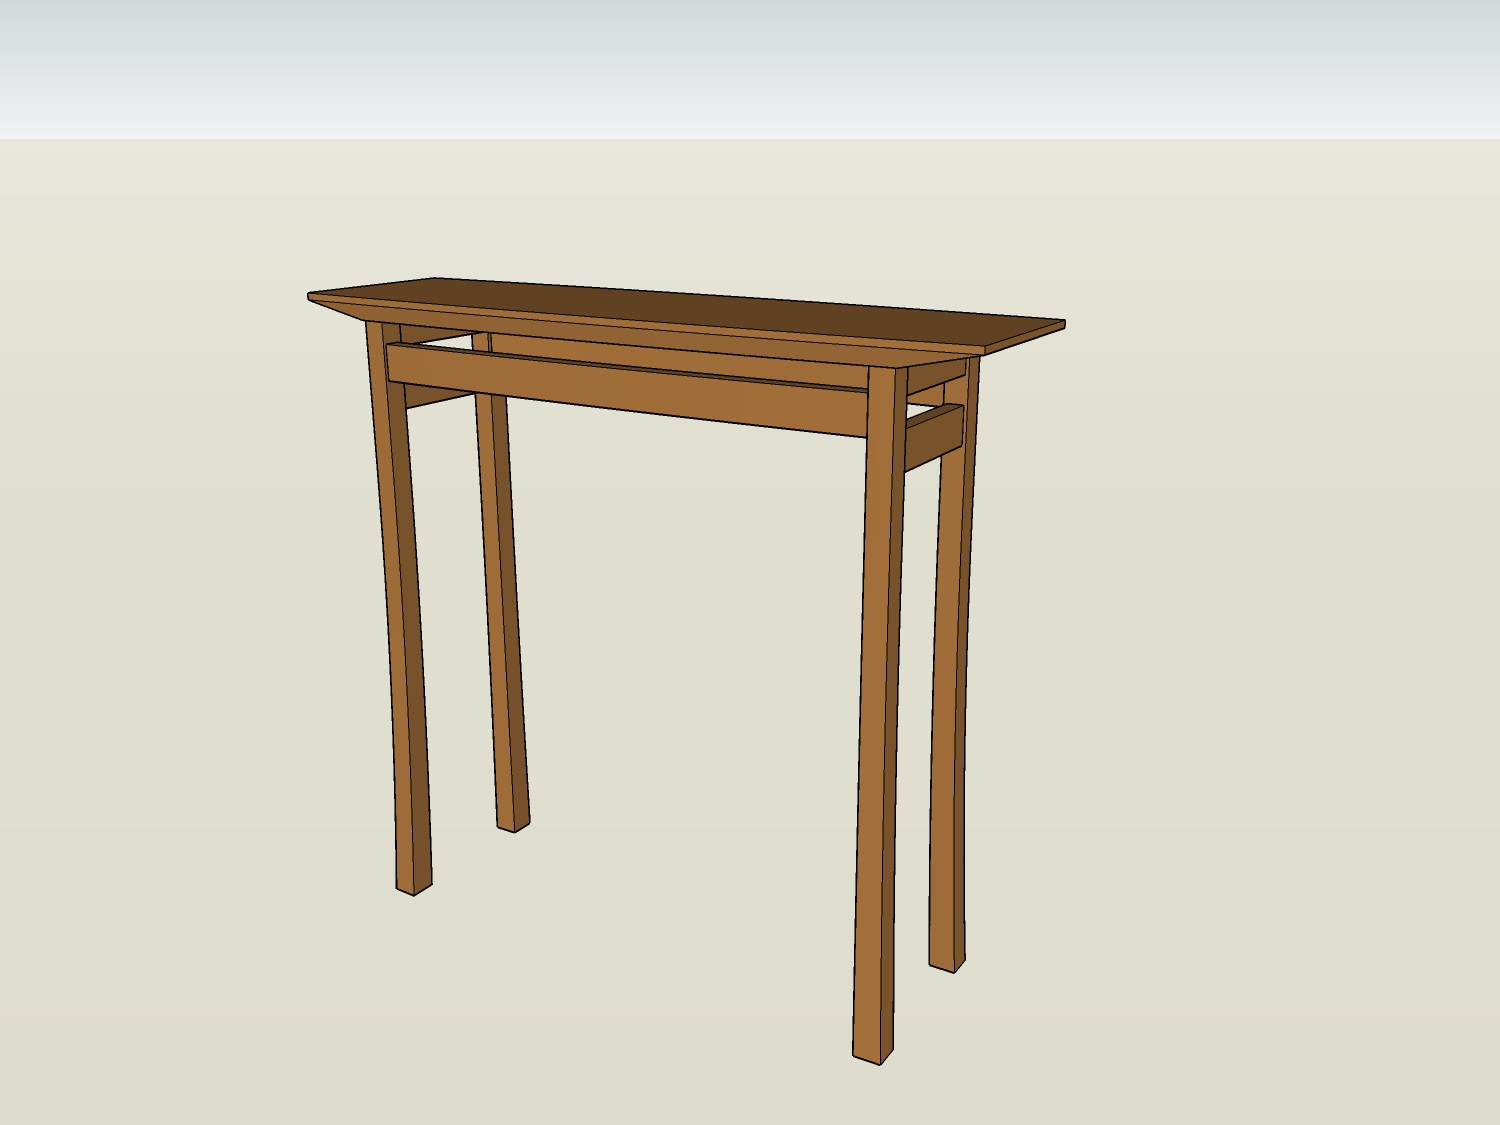 2015-06-30 Barsky Accent Table Model View 1500.jpg